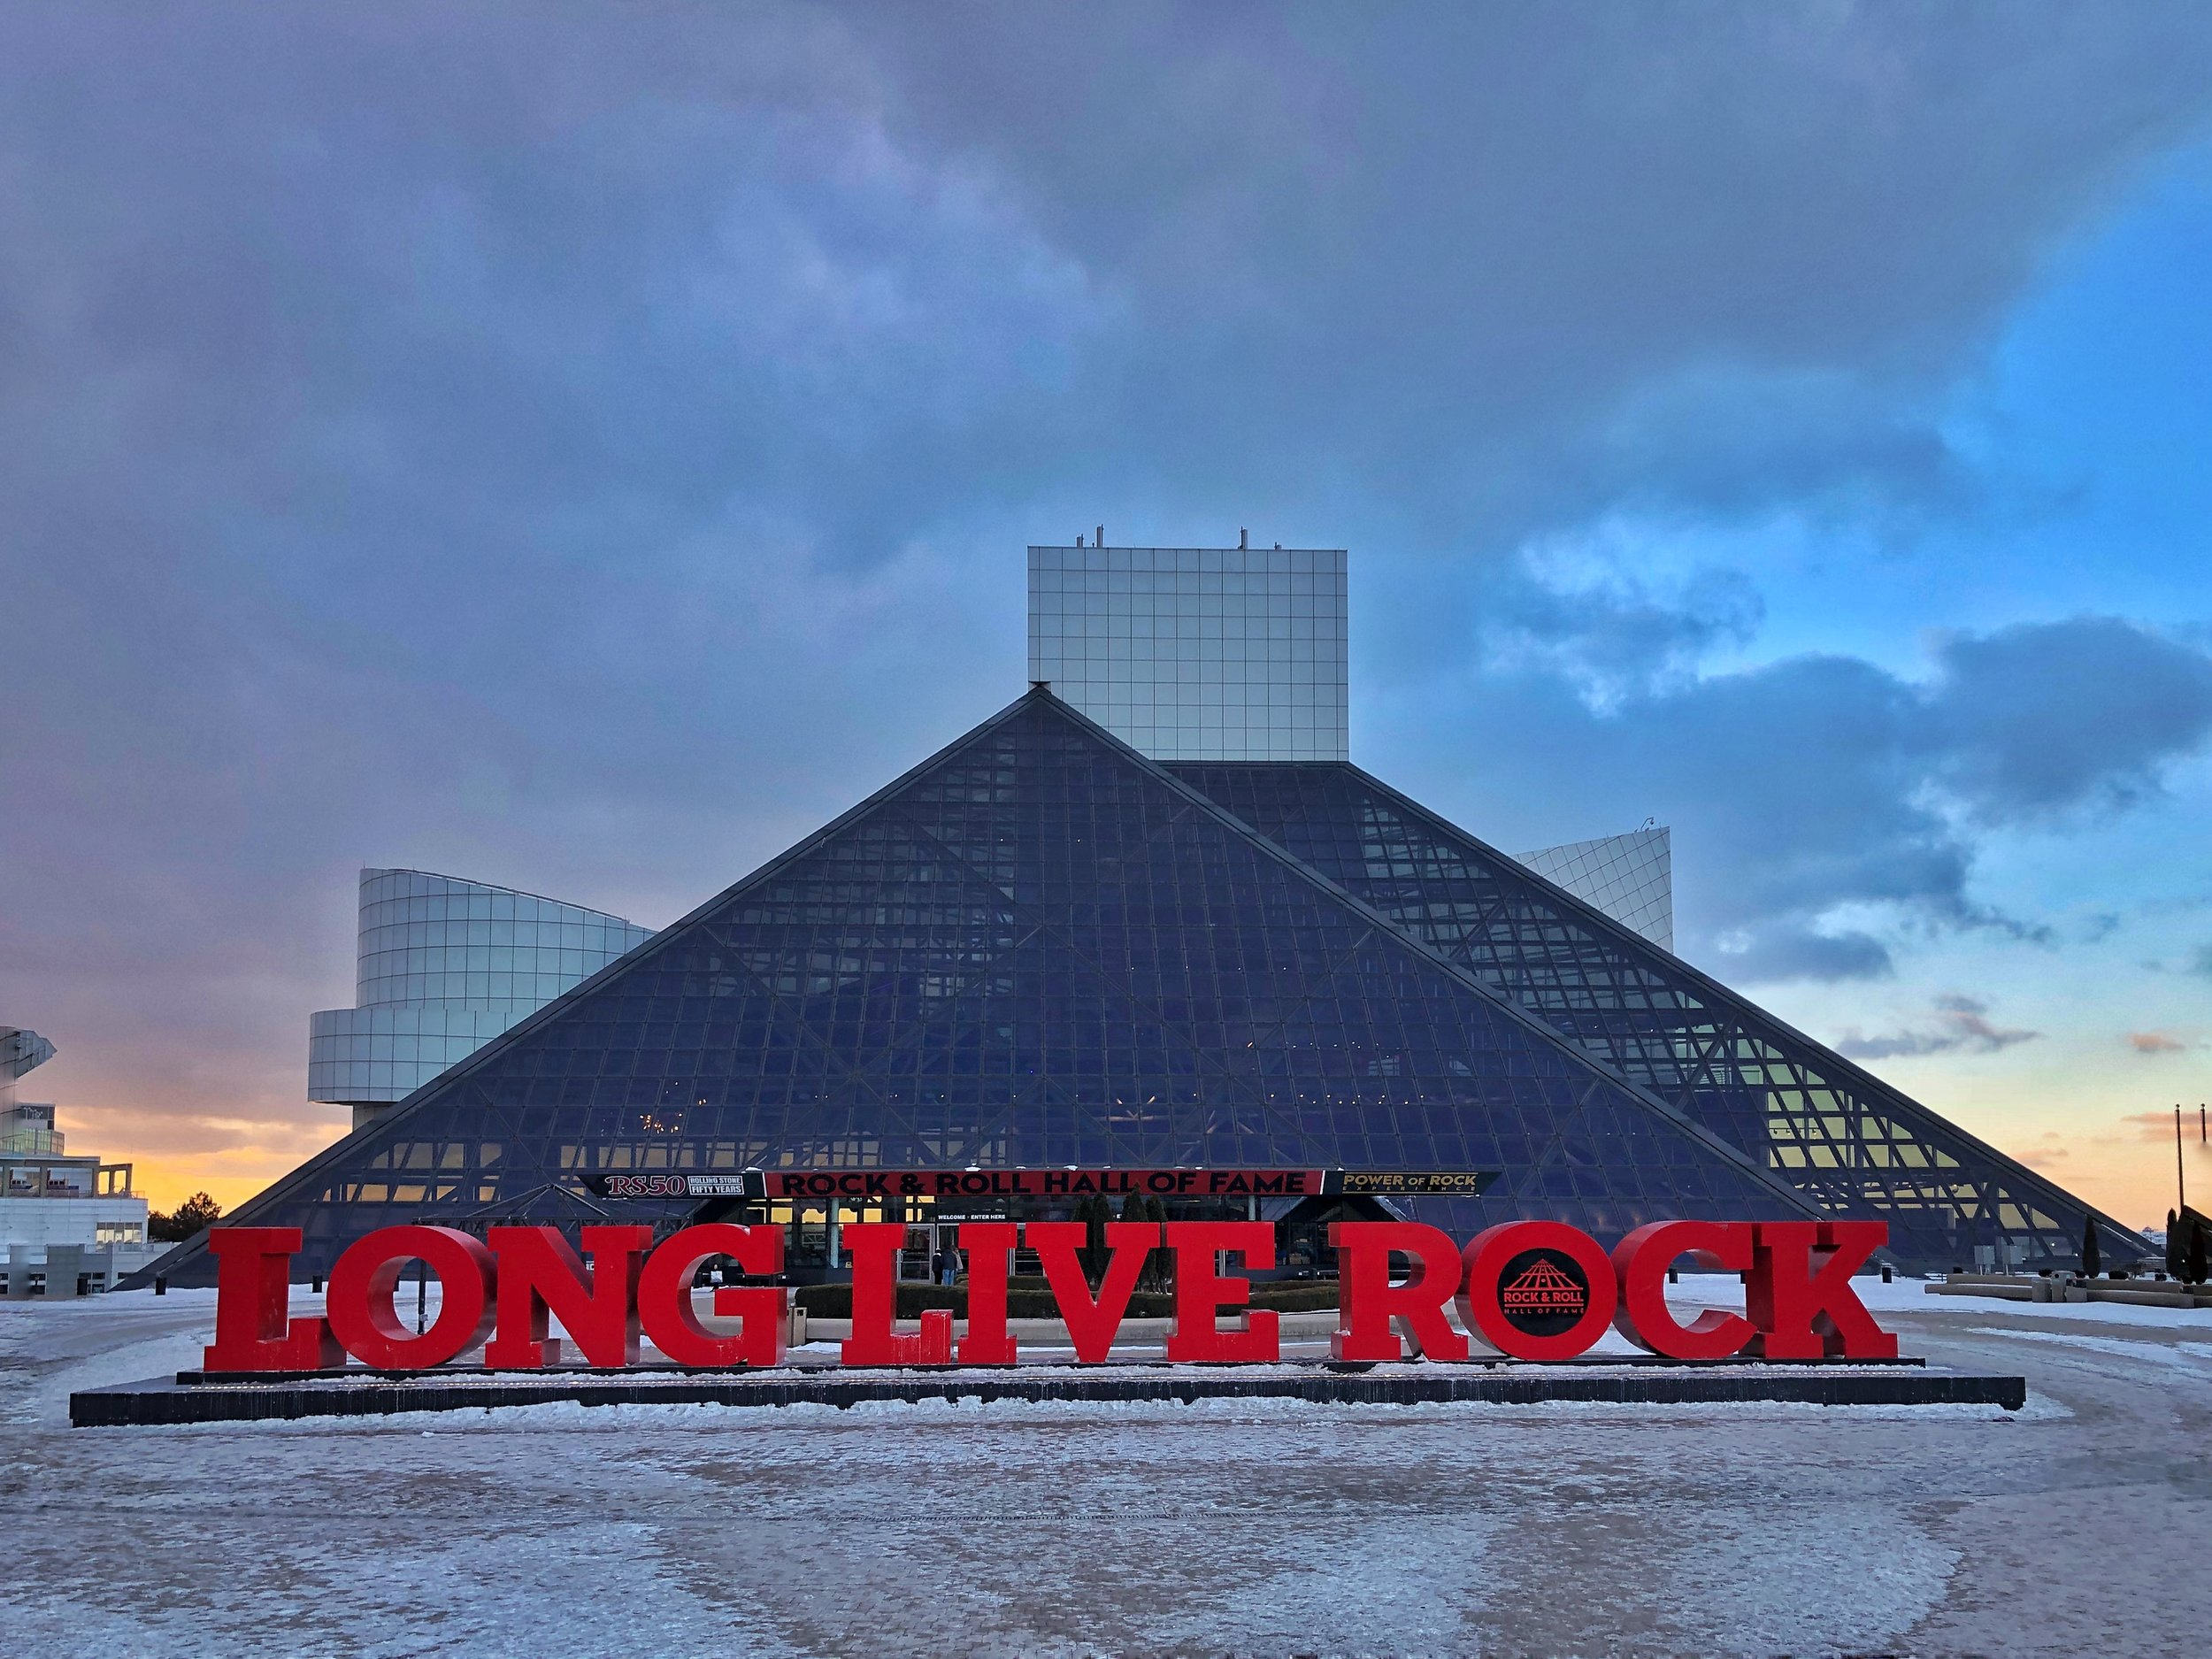 The Rock and Roll Hall of Fame, designed by I. M. Pei.